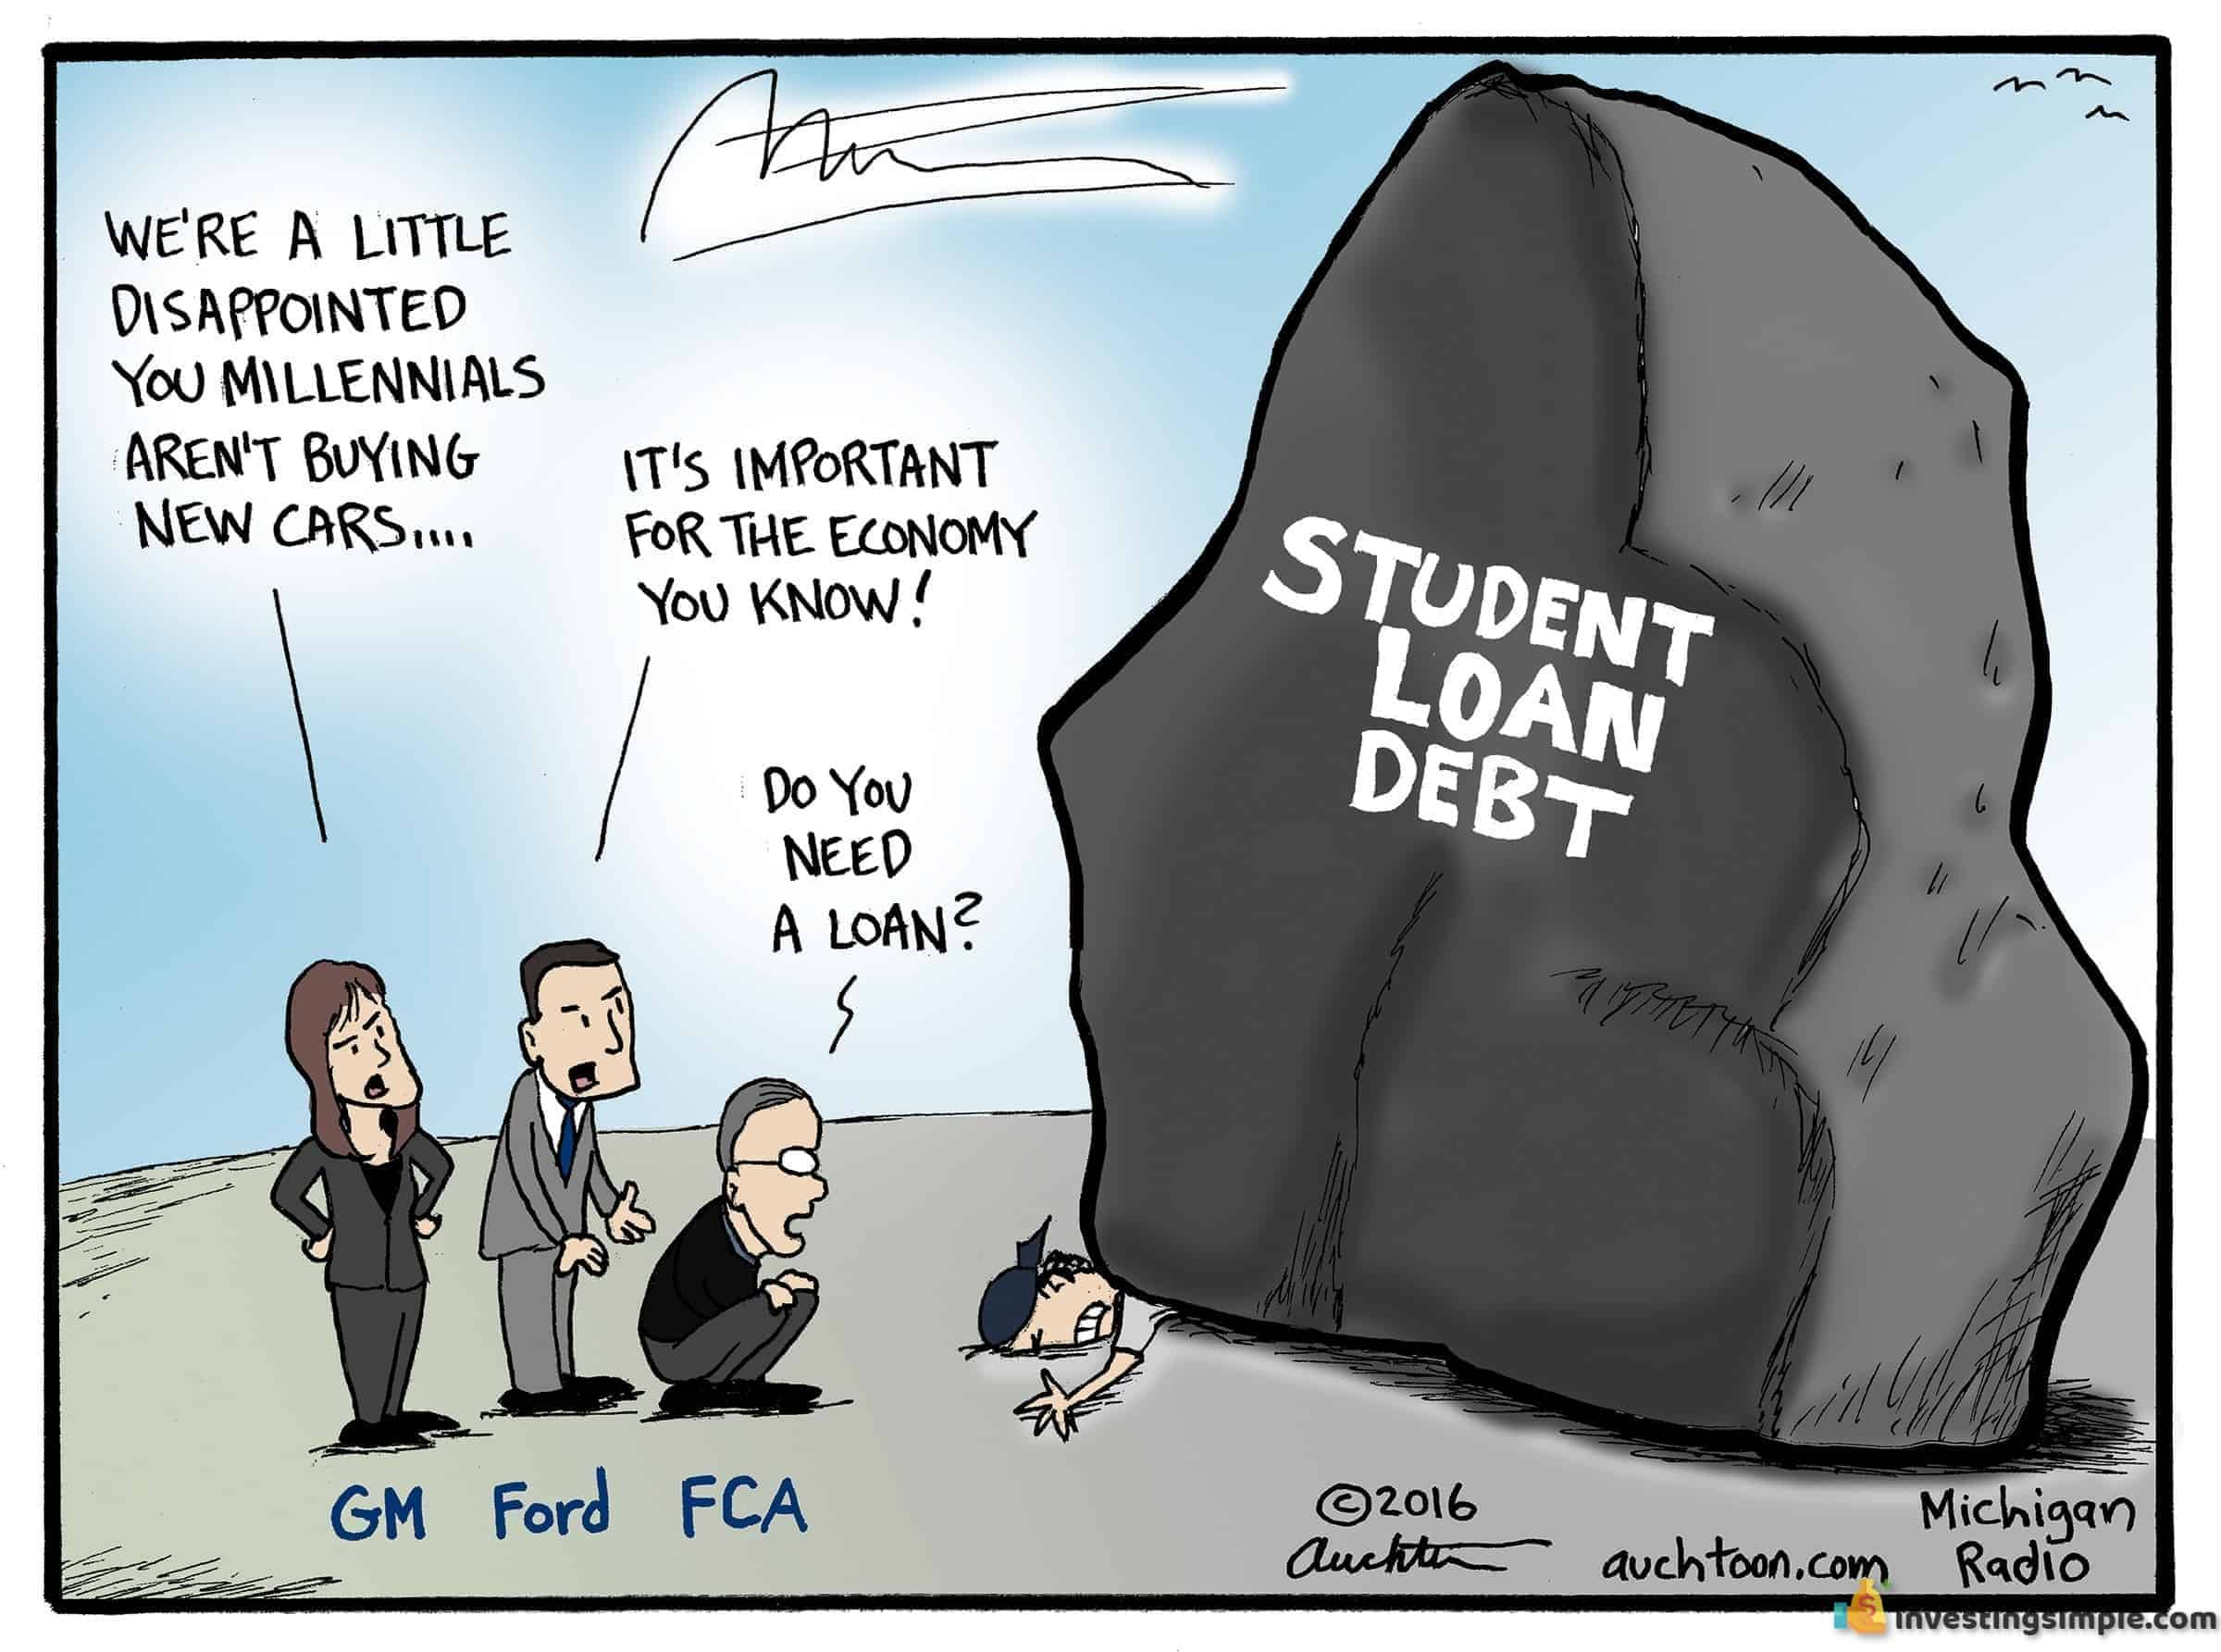 Student loan debt is a major deterrent for going to college.